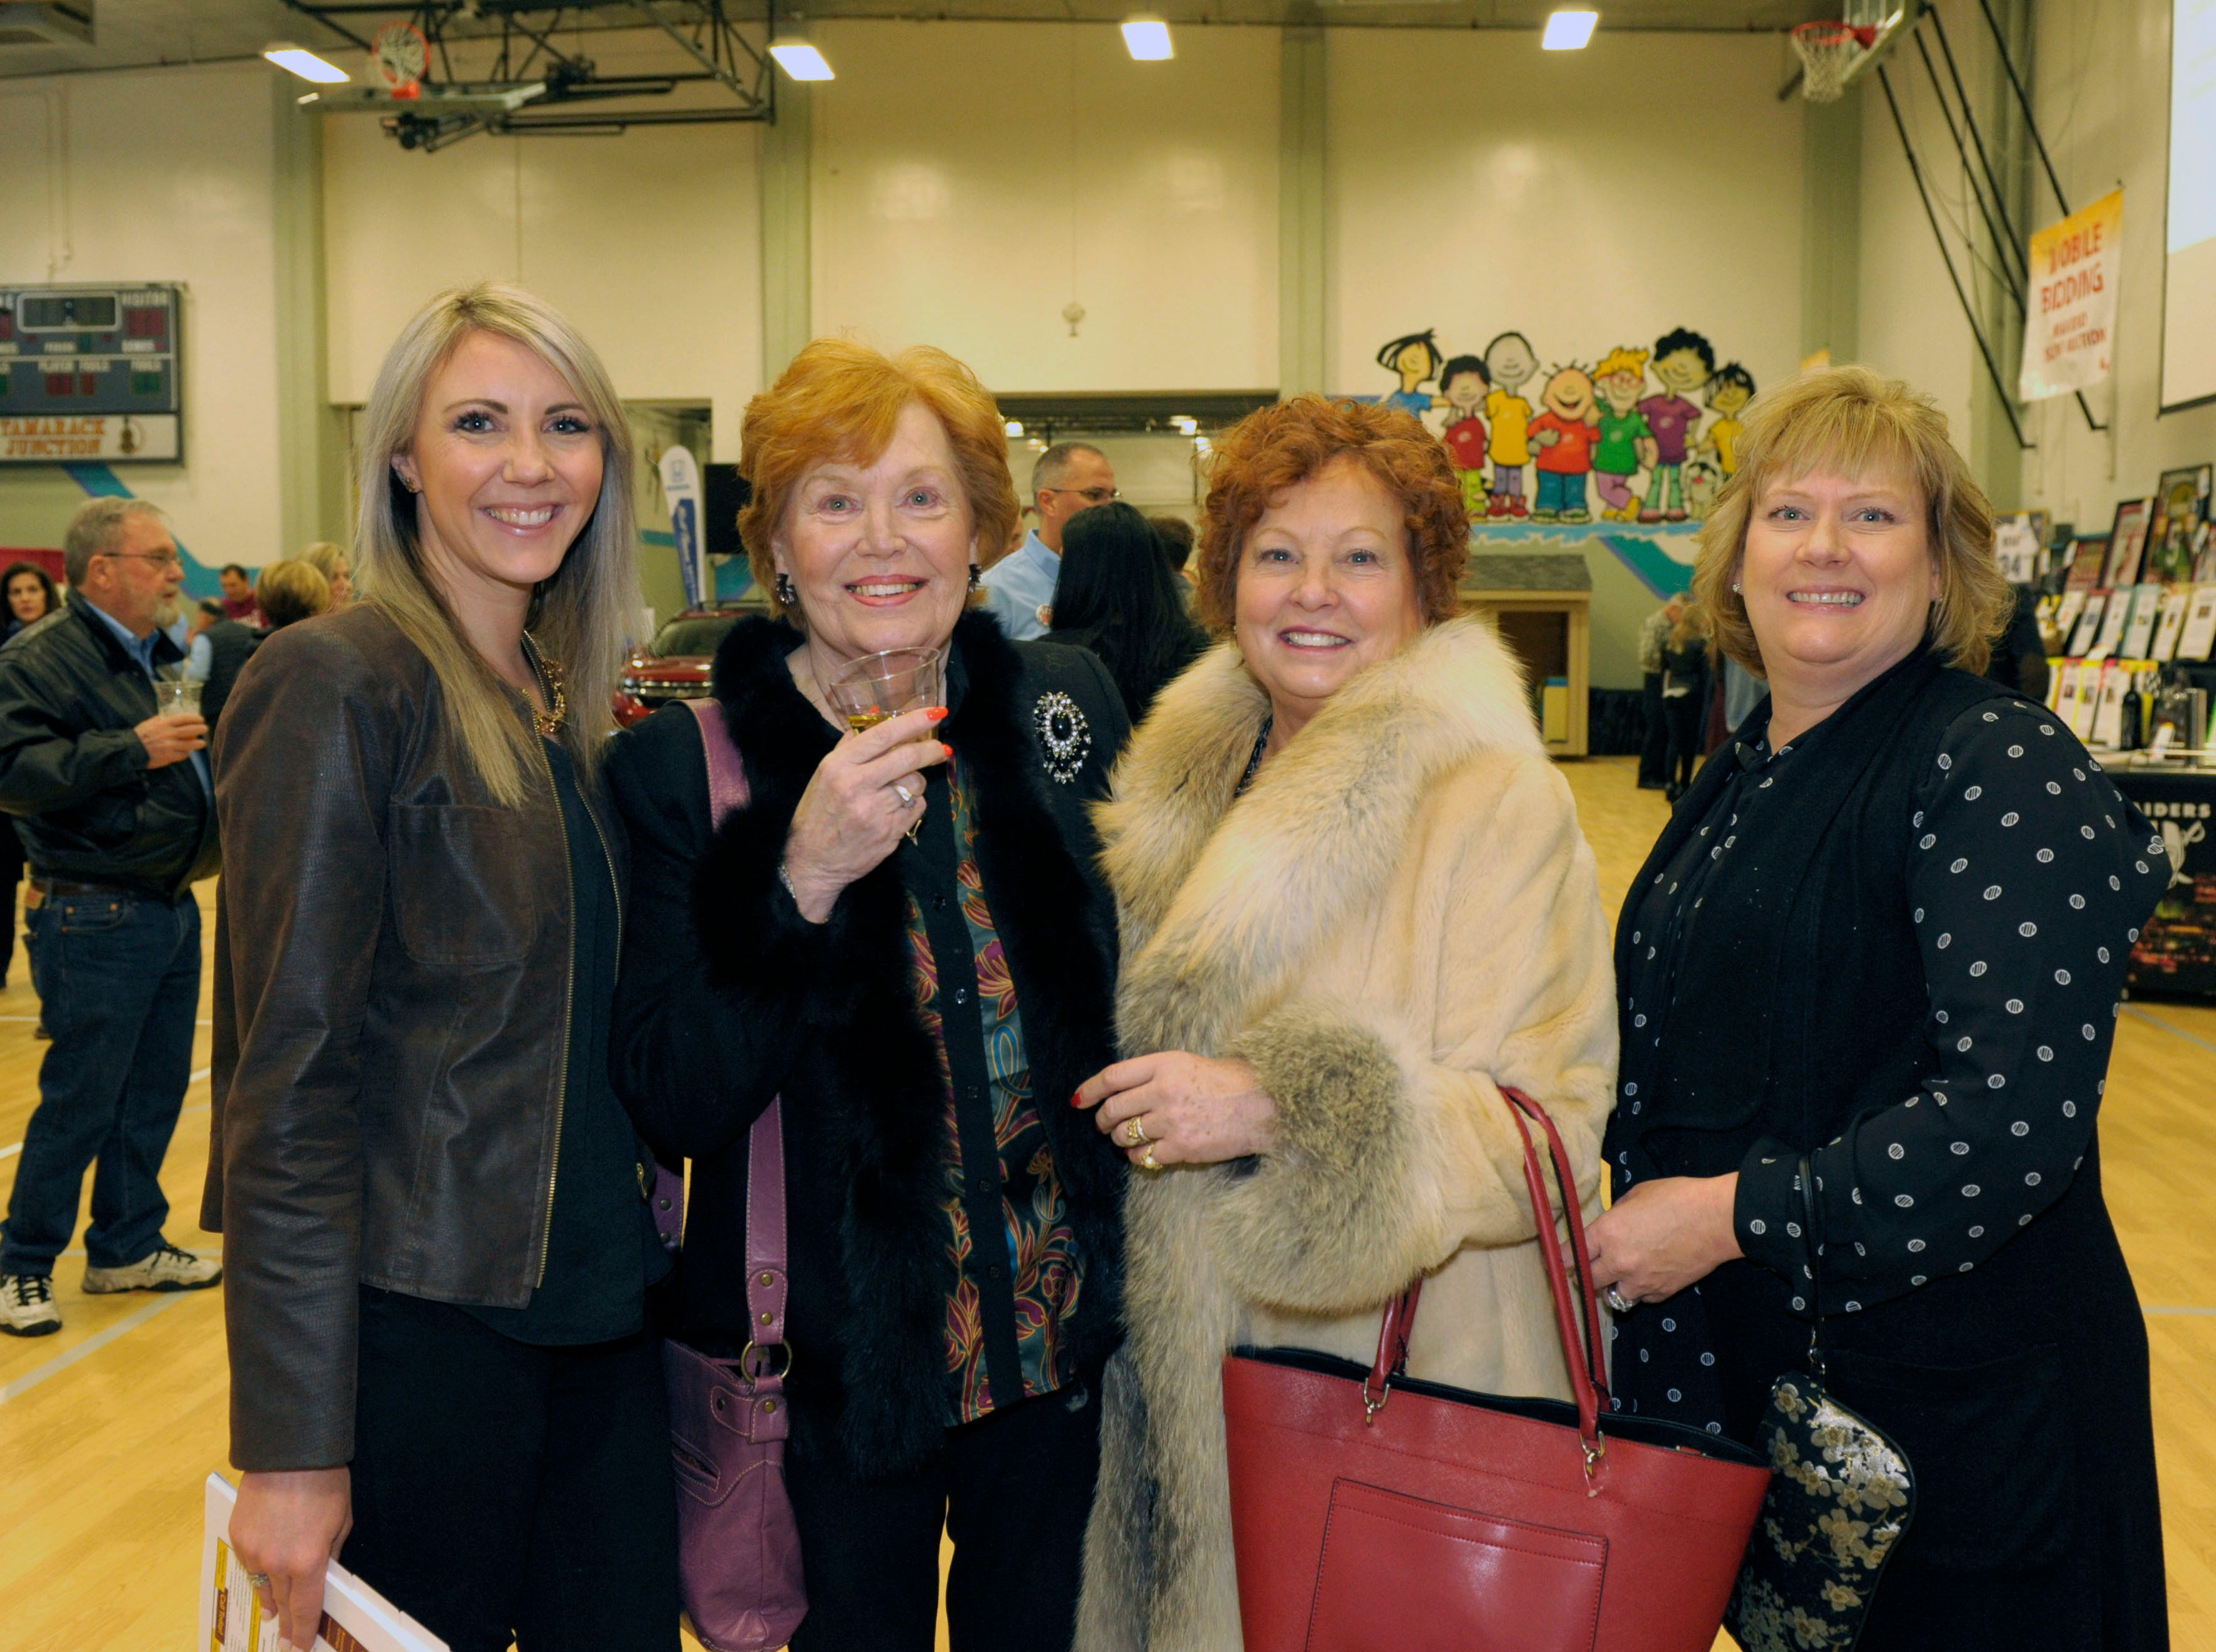 Katie Silva, Becki Brooke, Marsha Berkbigler and Dian VanderWell attend the 39th Annual Jack T. Reviglio Cioppino Feed and Auction at the Boys & Girls Club of Truckee Meadows Sat., Feb. 23, 2019. Photos by Lisa J. Tolda/Special to the RGJ.